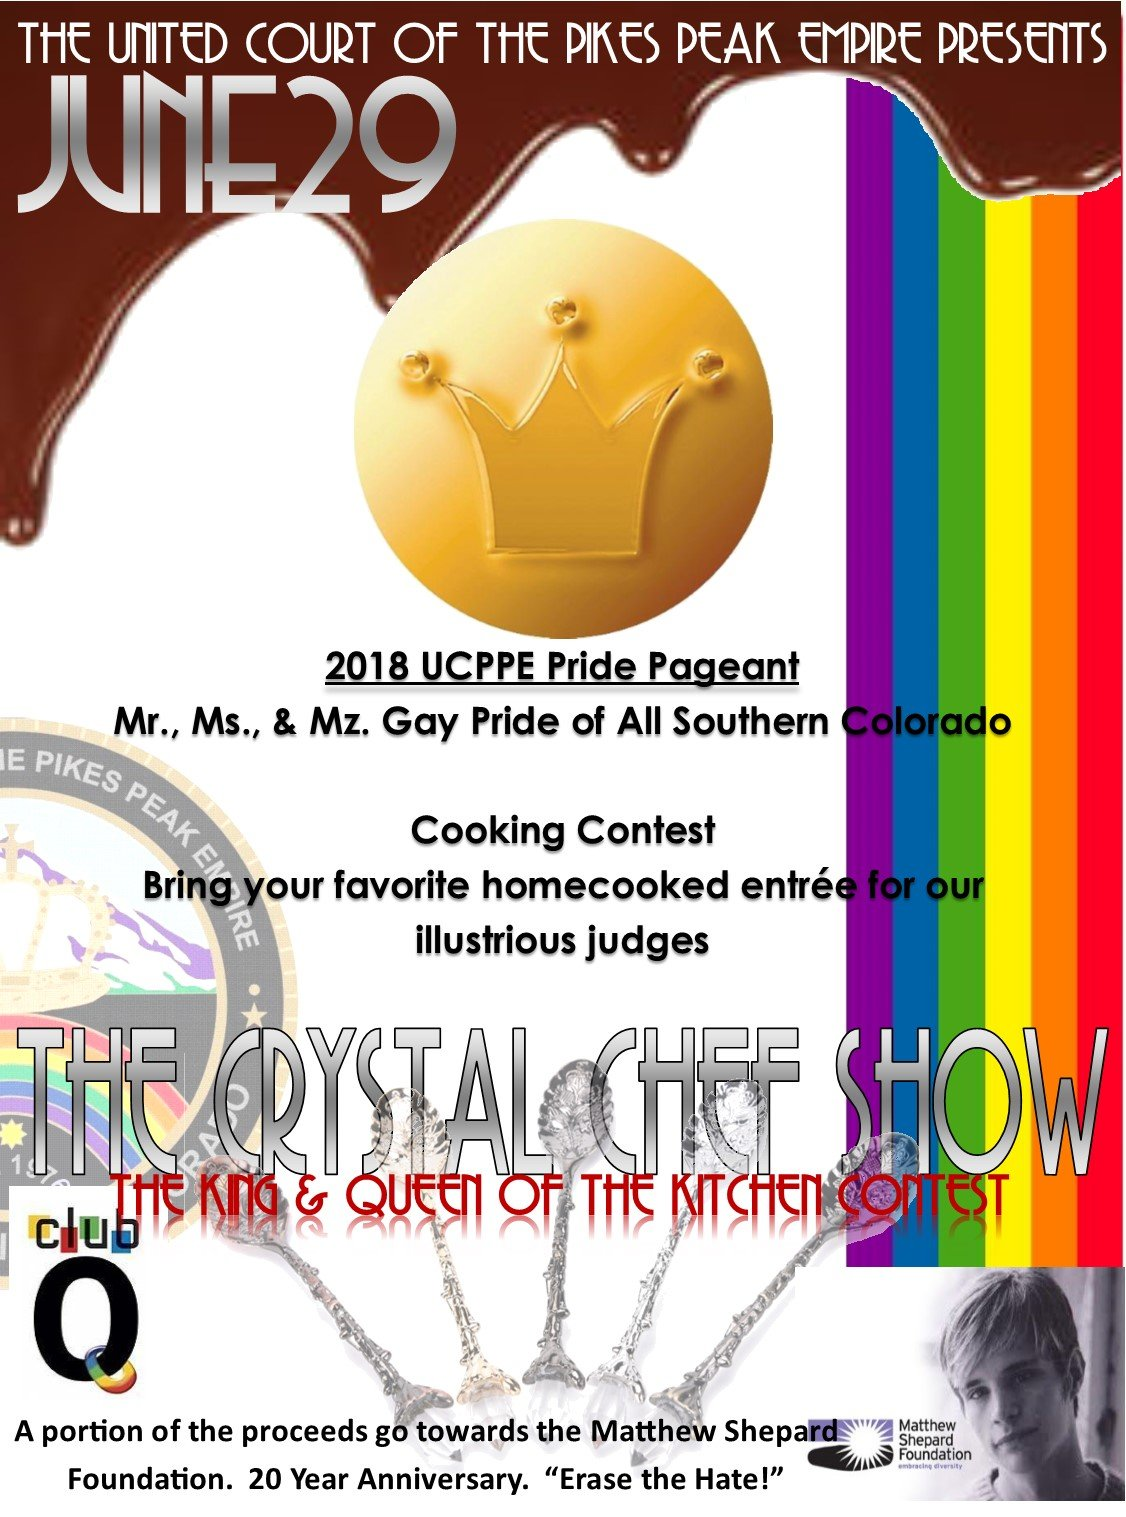 click to visit the pridefest information page